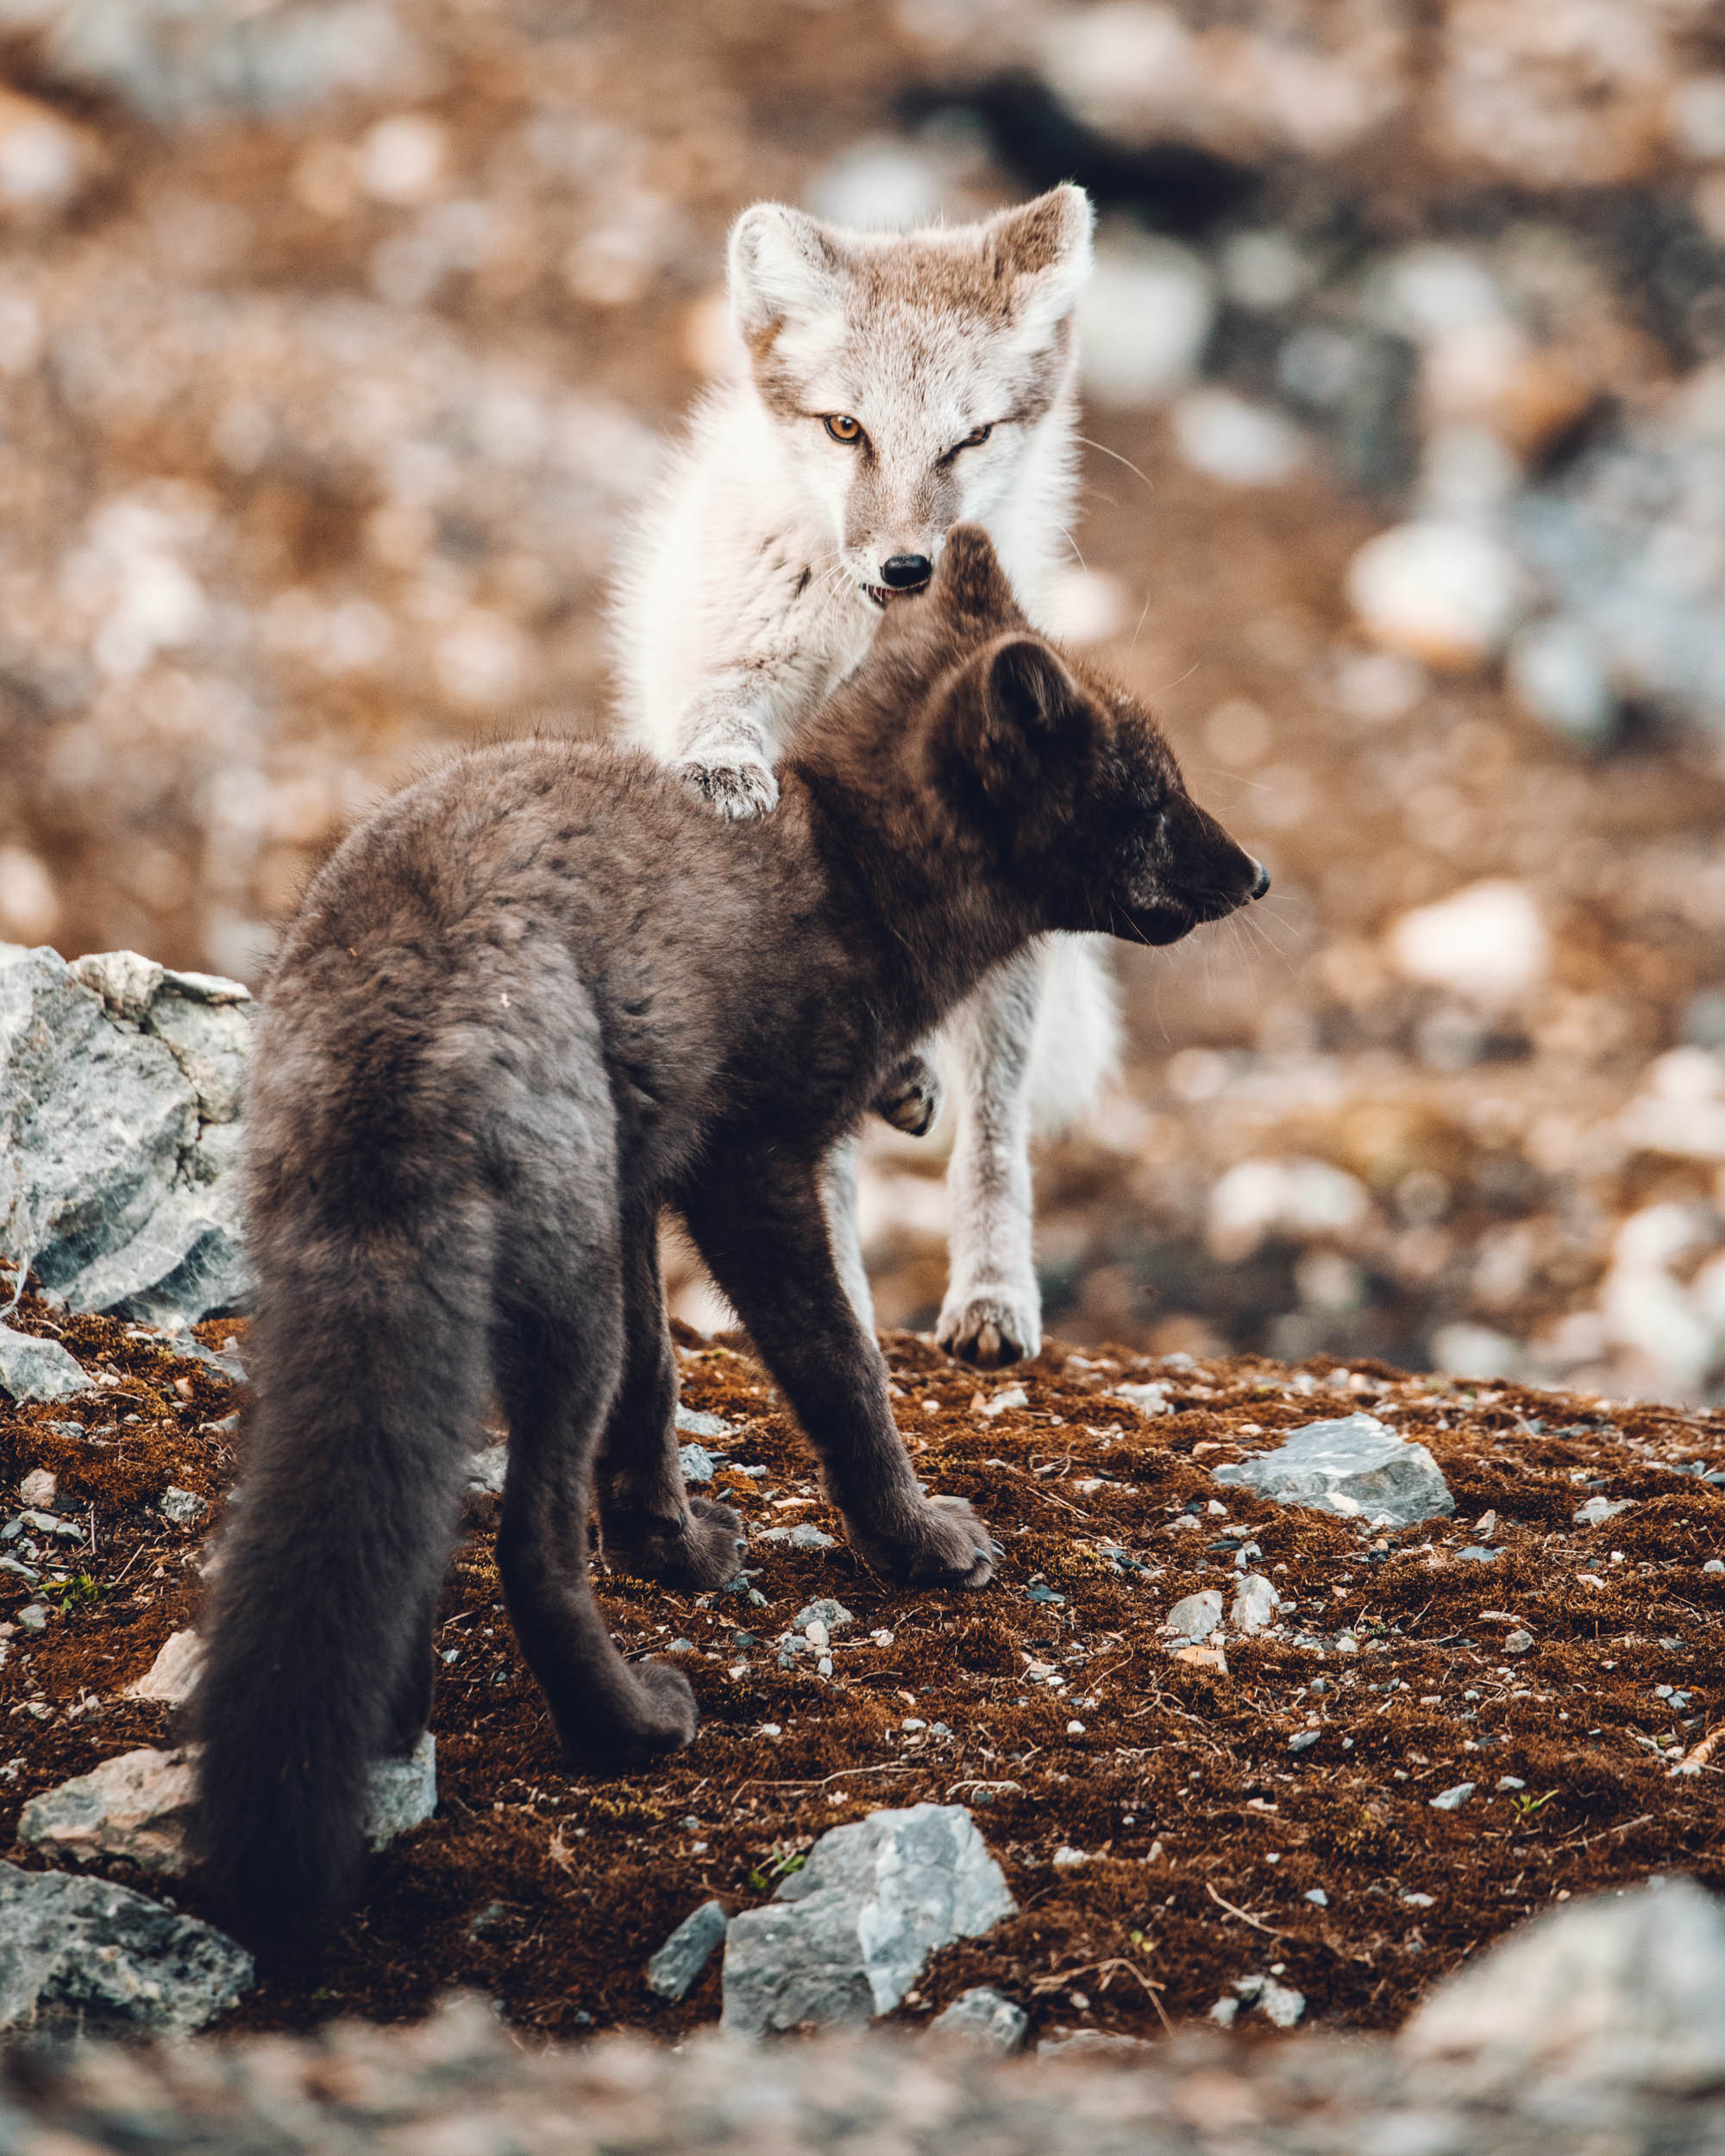 Blue and white Arctic Fox in Svalbard, Spitsbergen, Norway